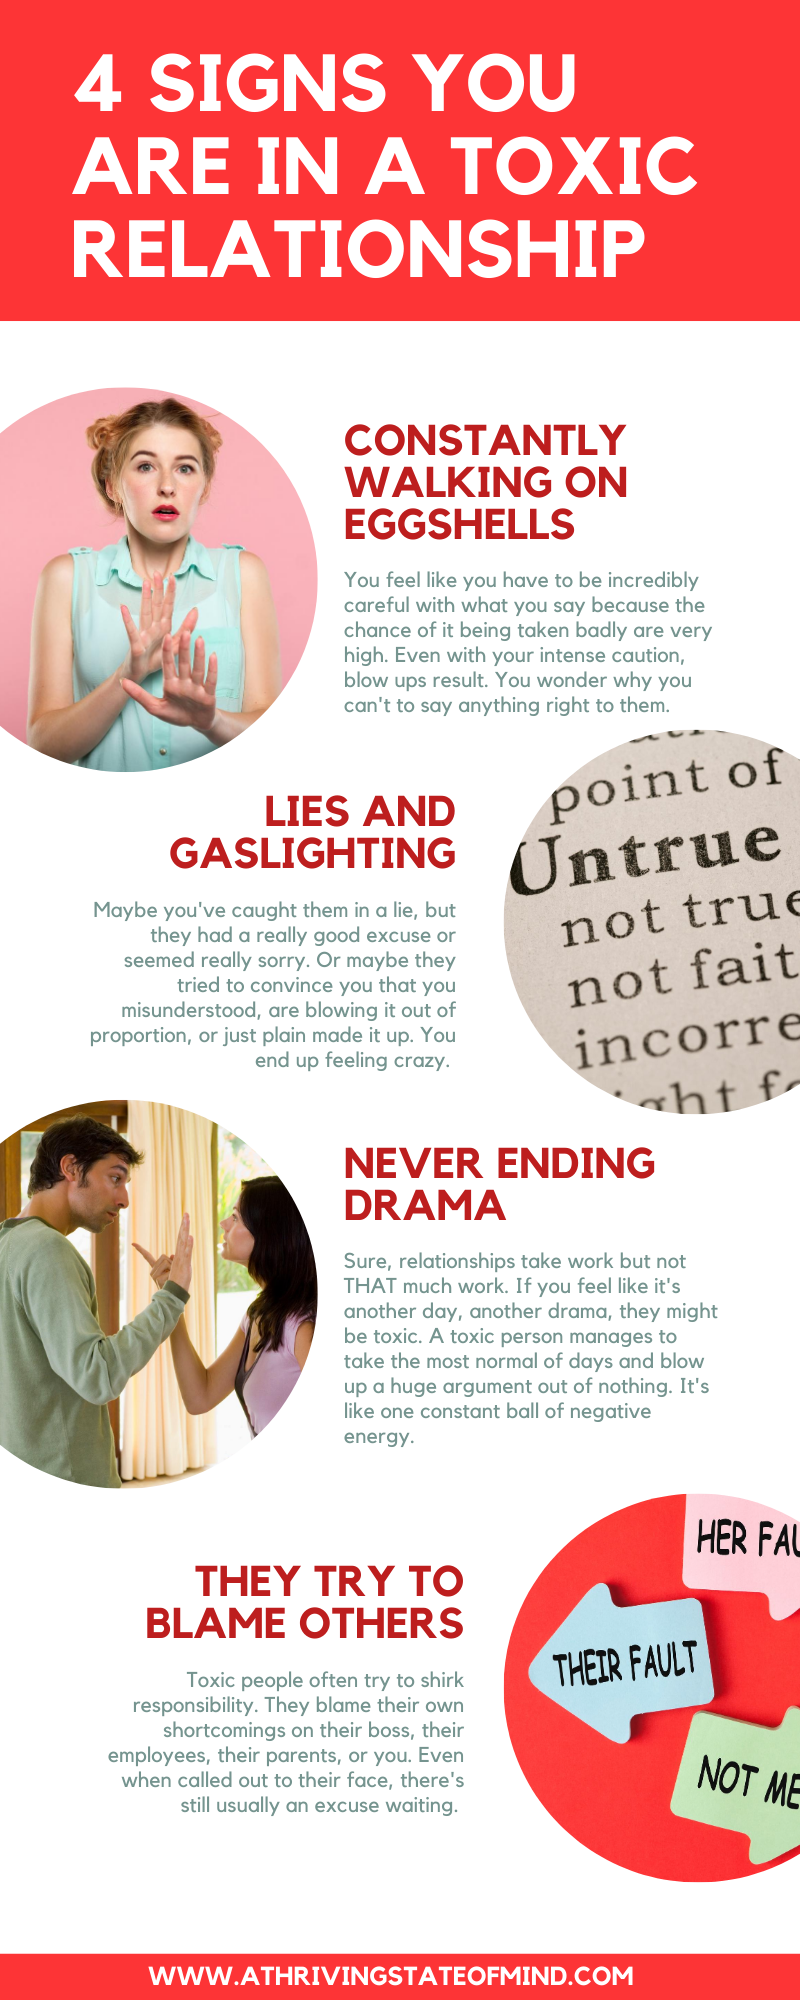 4 signs you are in a toxic relationship